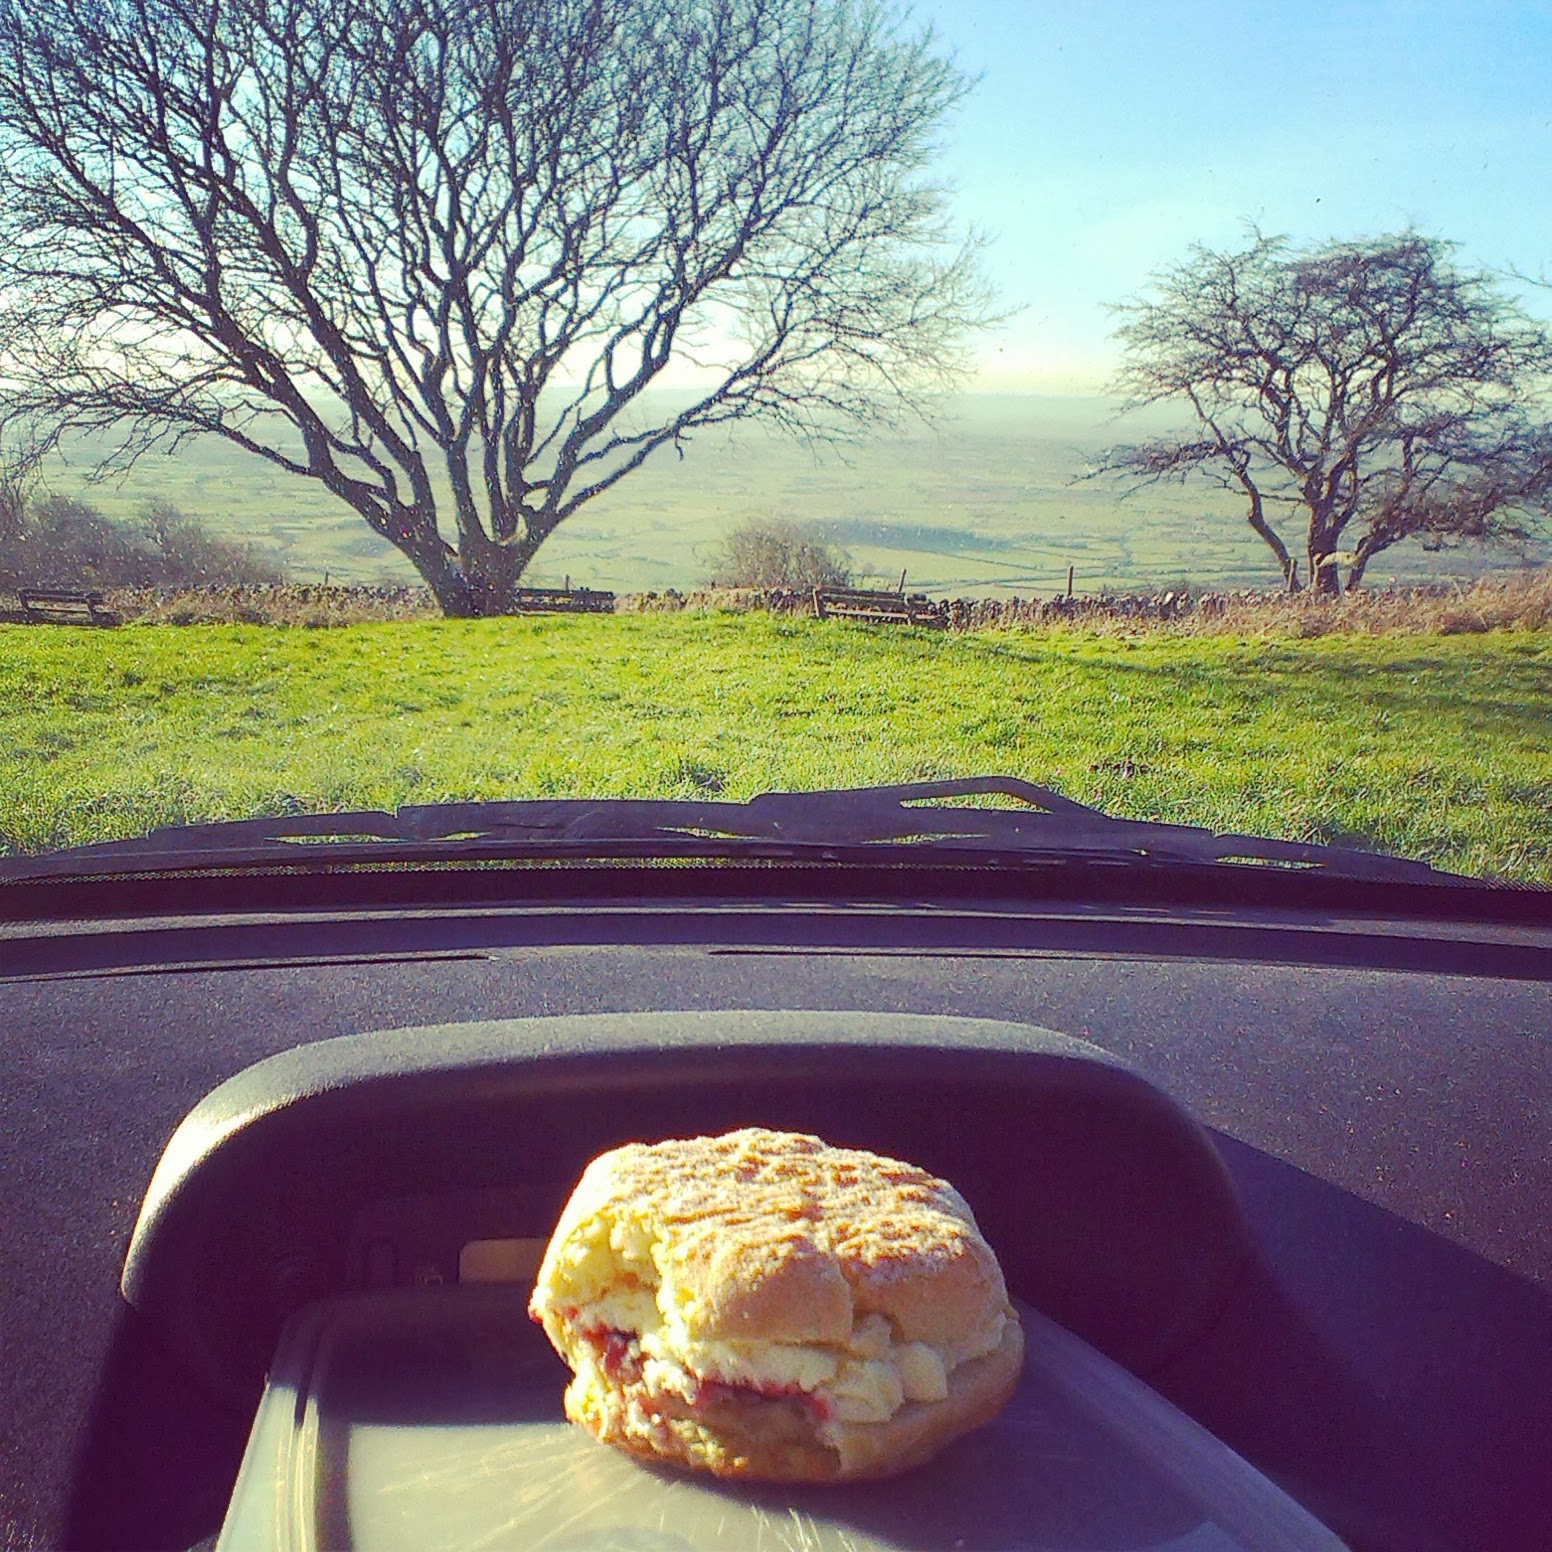 Cream scone at a viewpoint